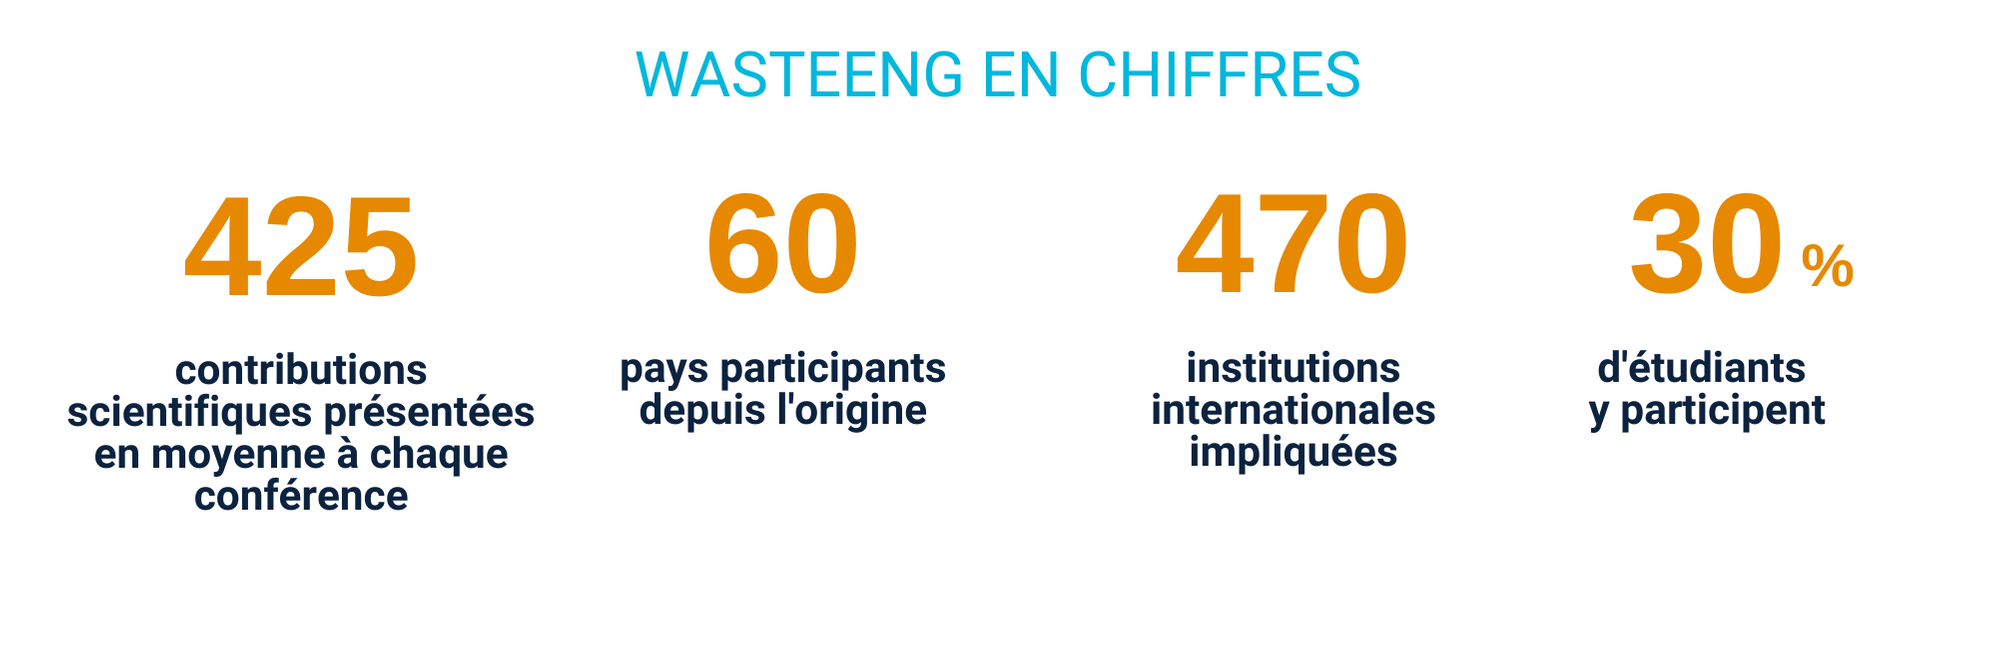 chiffres_conference_waste_eng.png